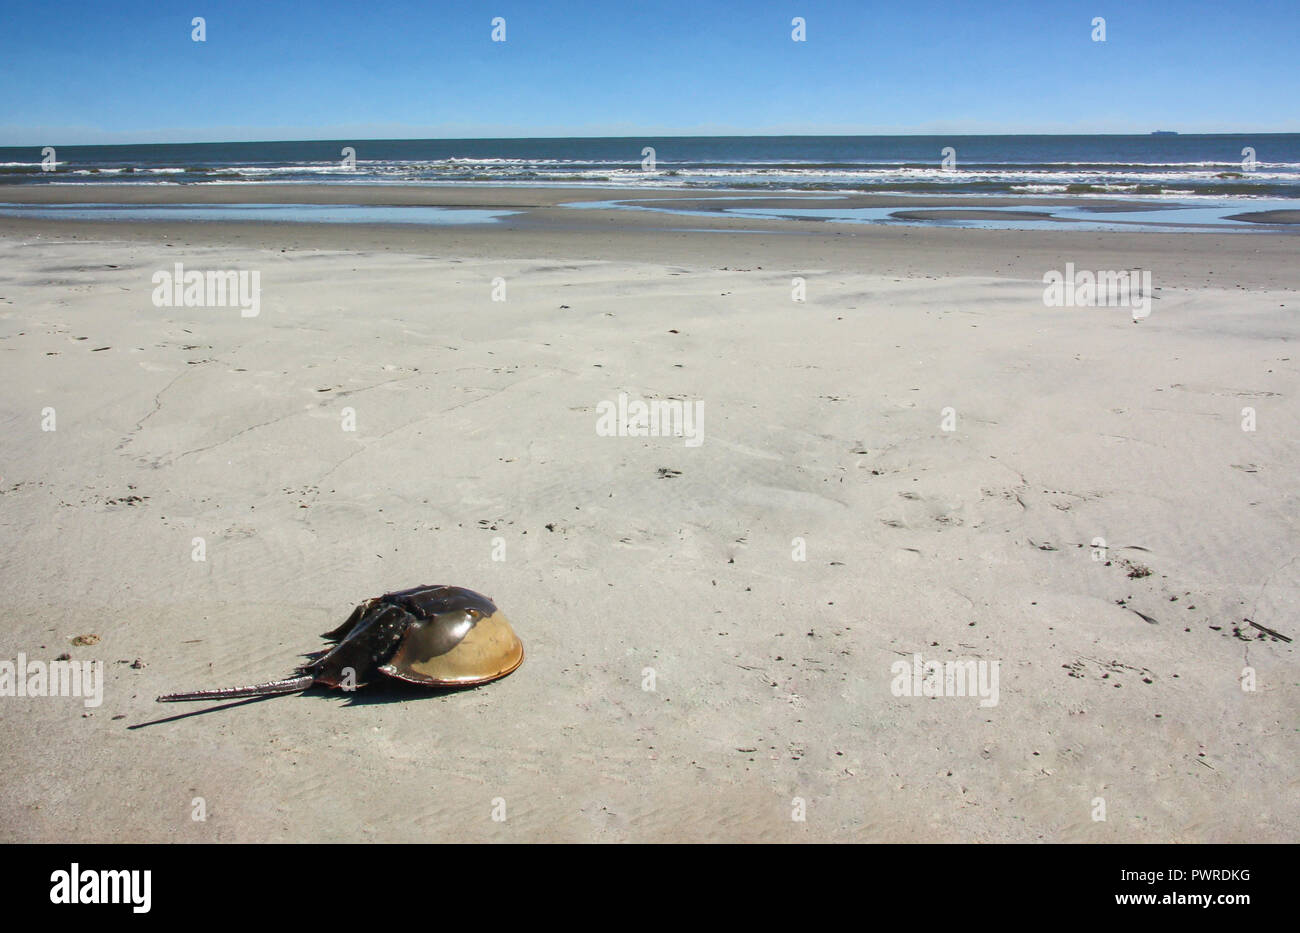 A horseshoe crab stranded on a beach with ocean waves in the background. - Stock Image